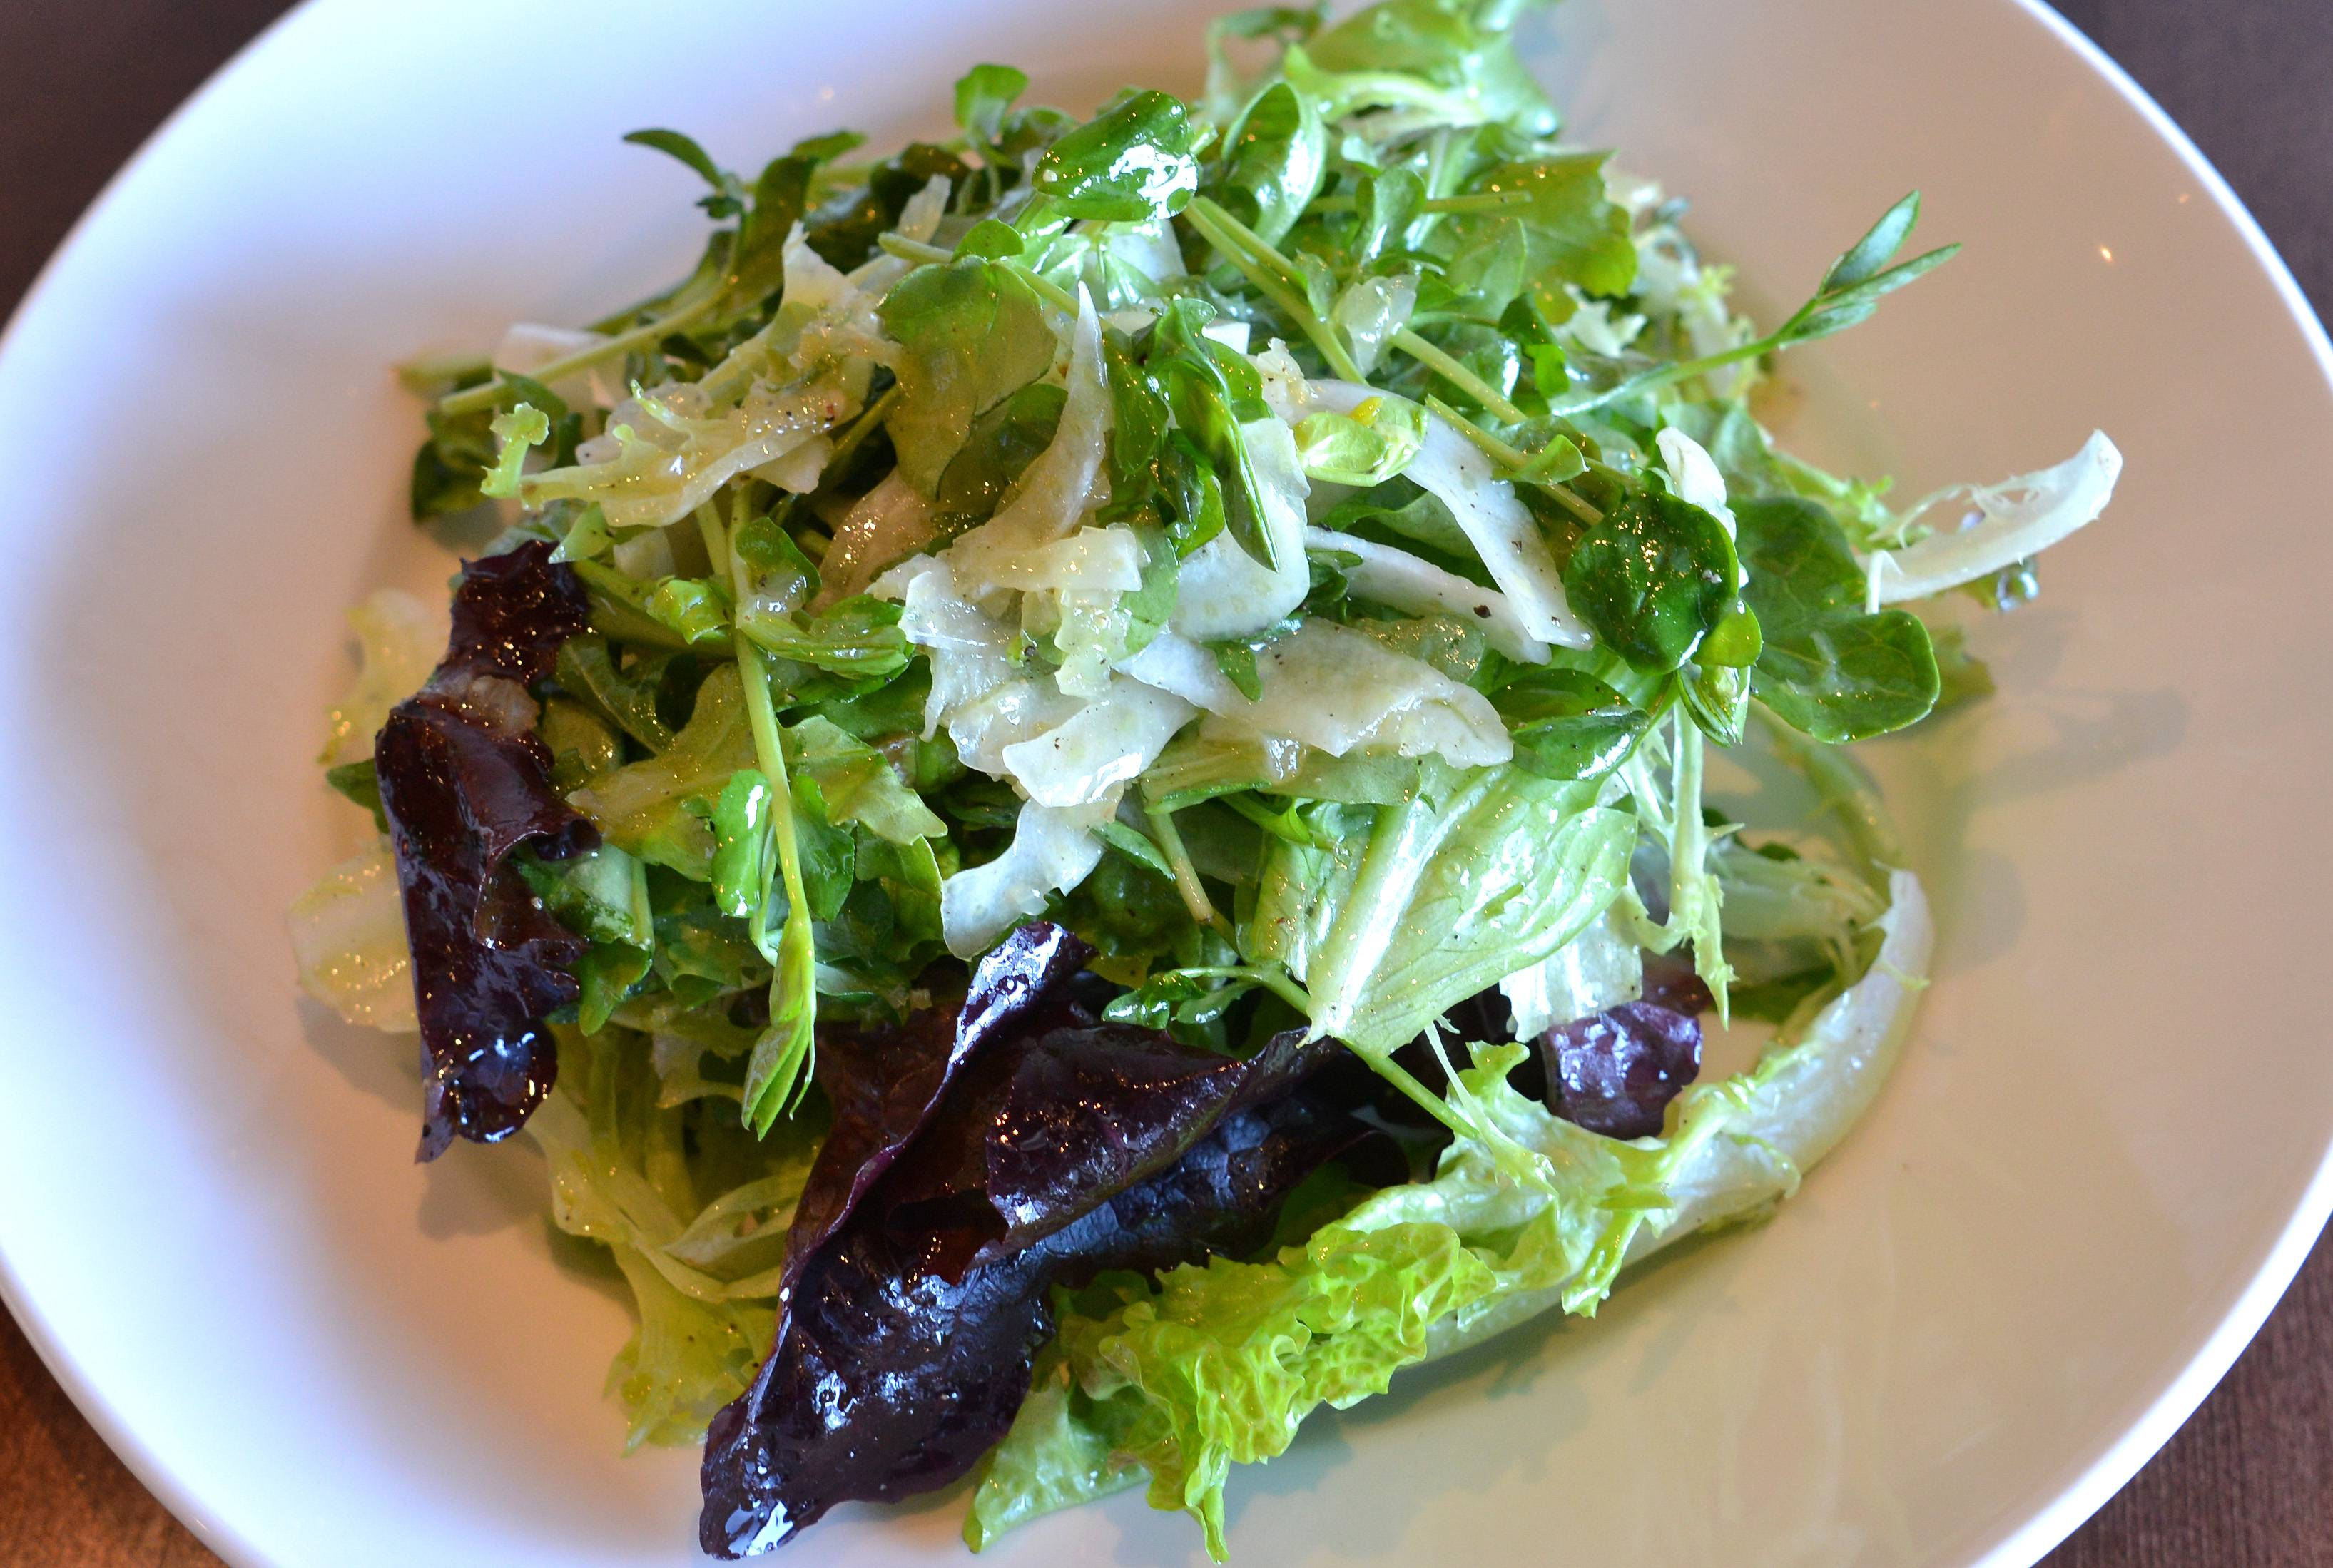 Local lettuces with shaved fennel are paired with lemon vinaigrette at chef Paul Virant's new Vistro.